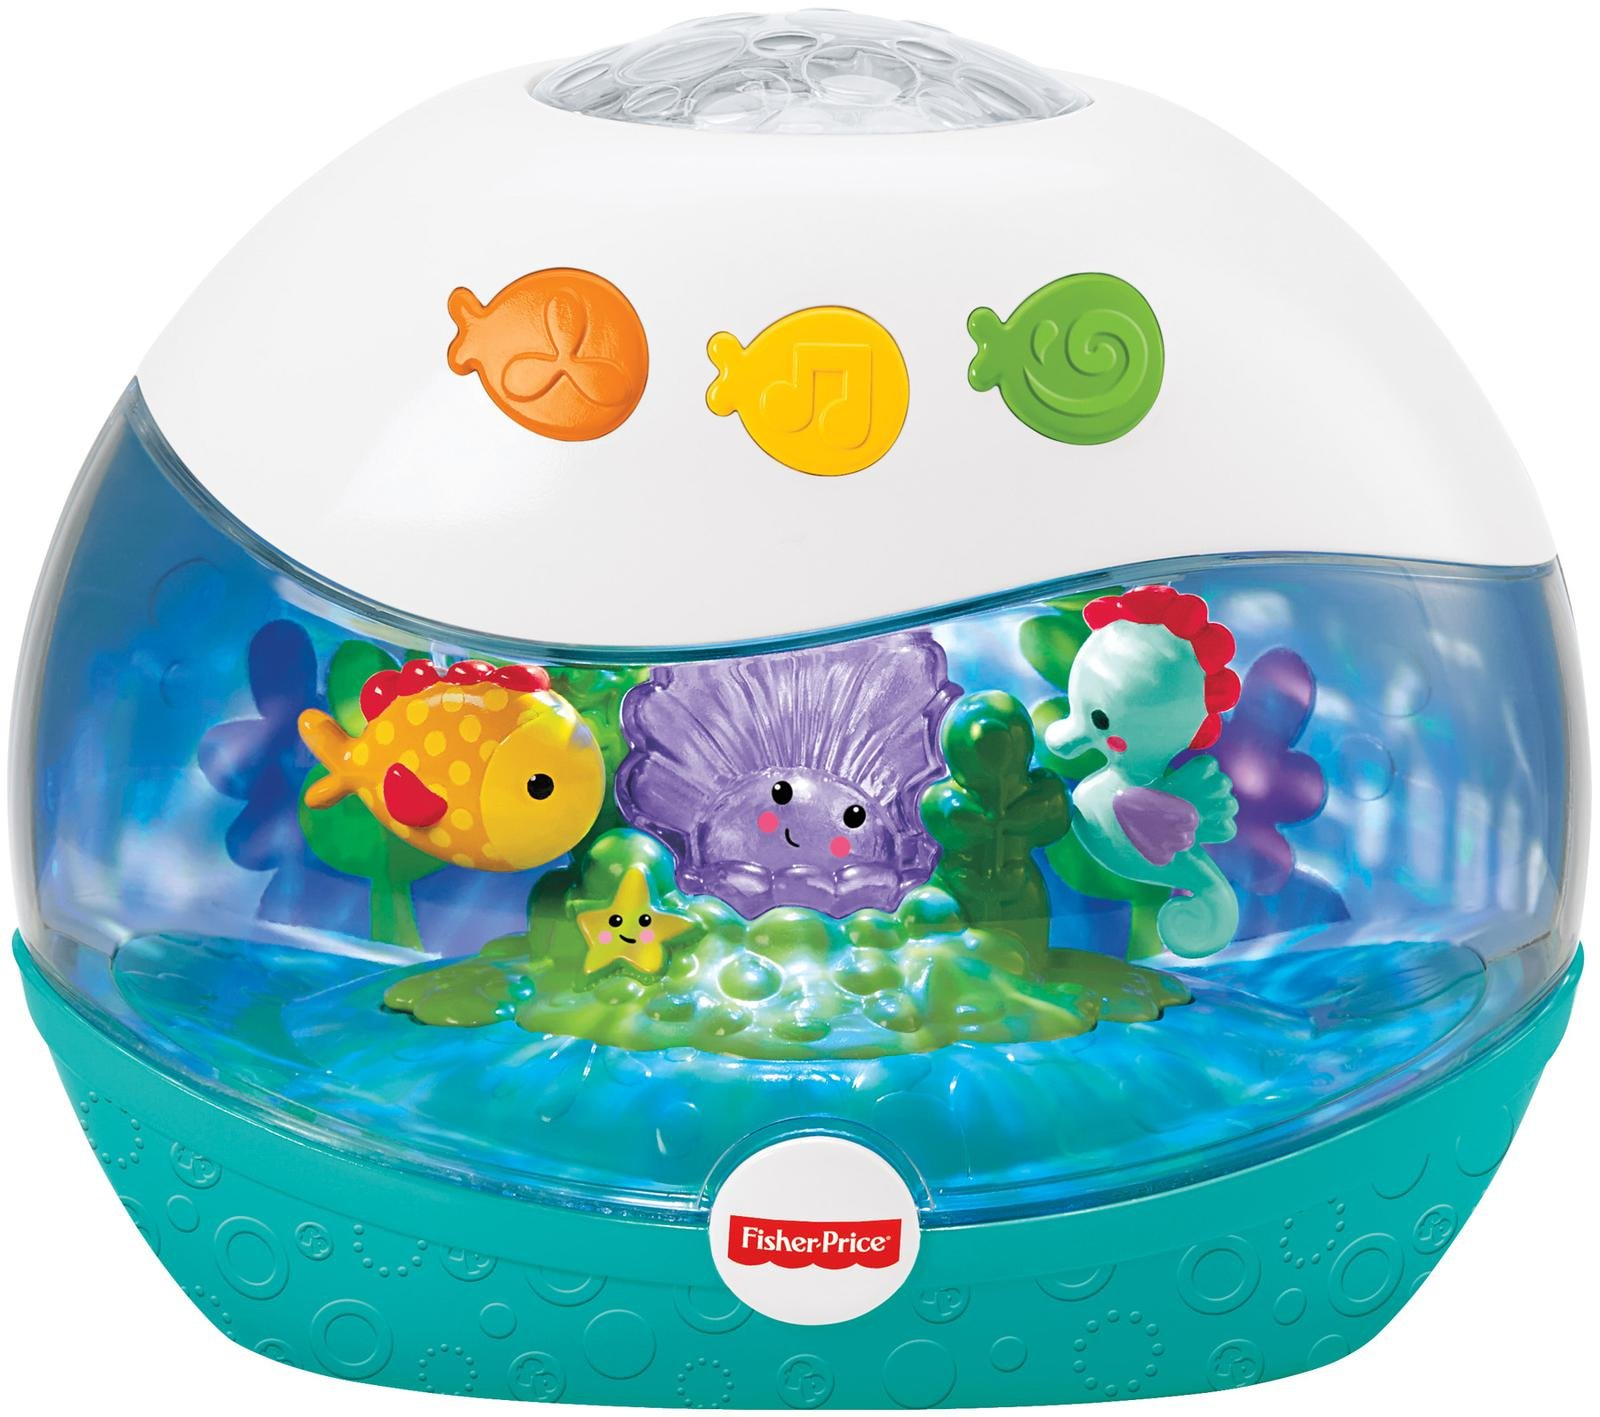 [FISHER PRICE] Newborn Calming Sea Projection Soother Infant Toy (0 Mo